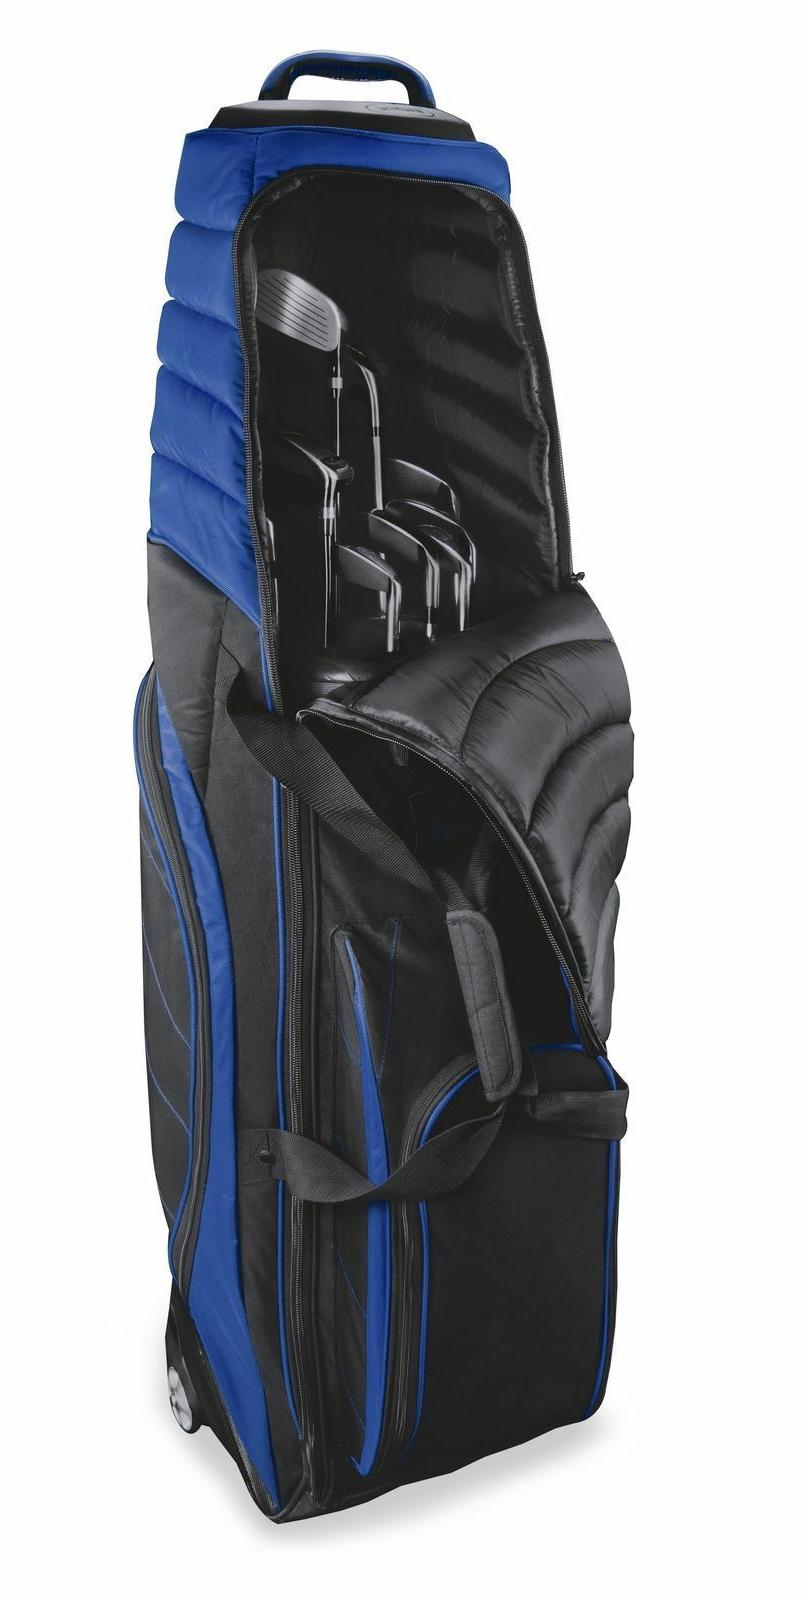 New Bag Boy Wheeled Travel Black Black/Royal